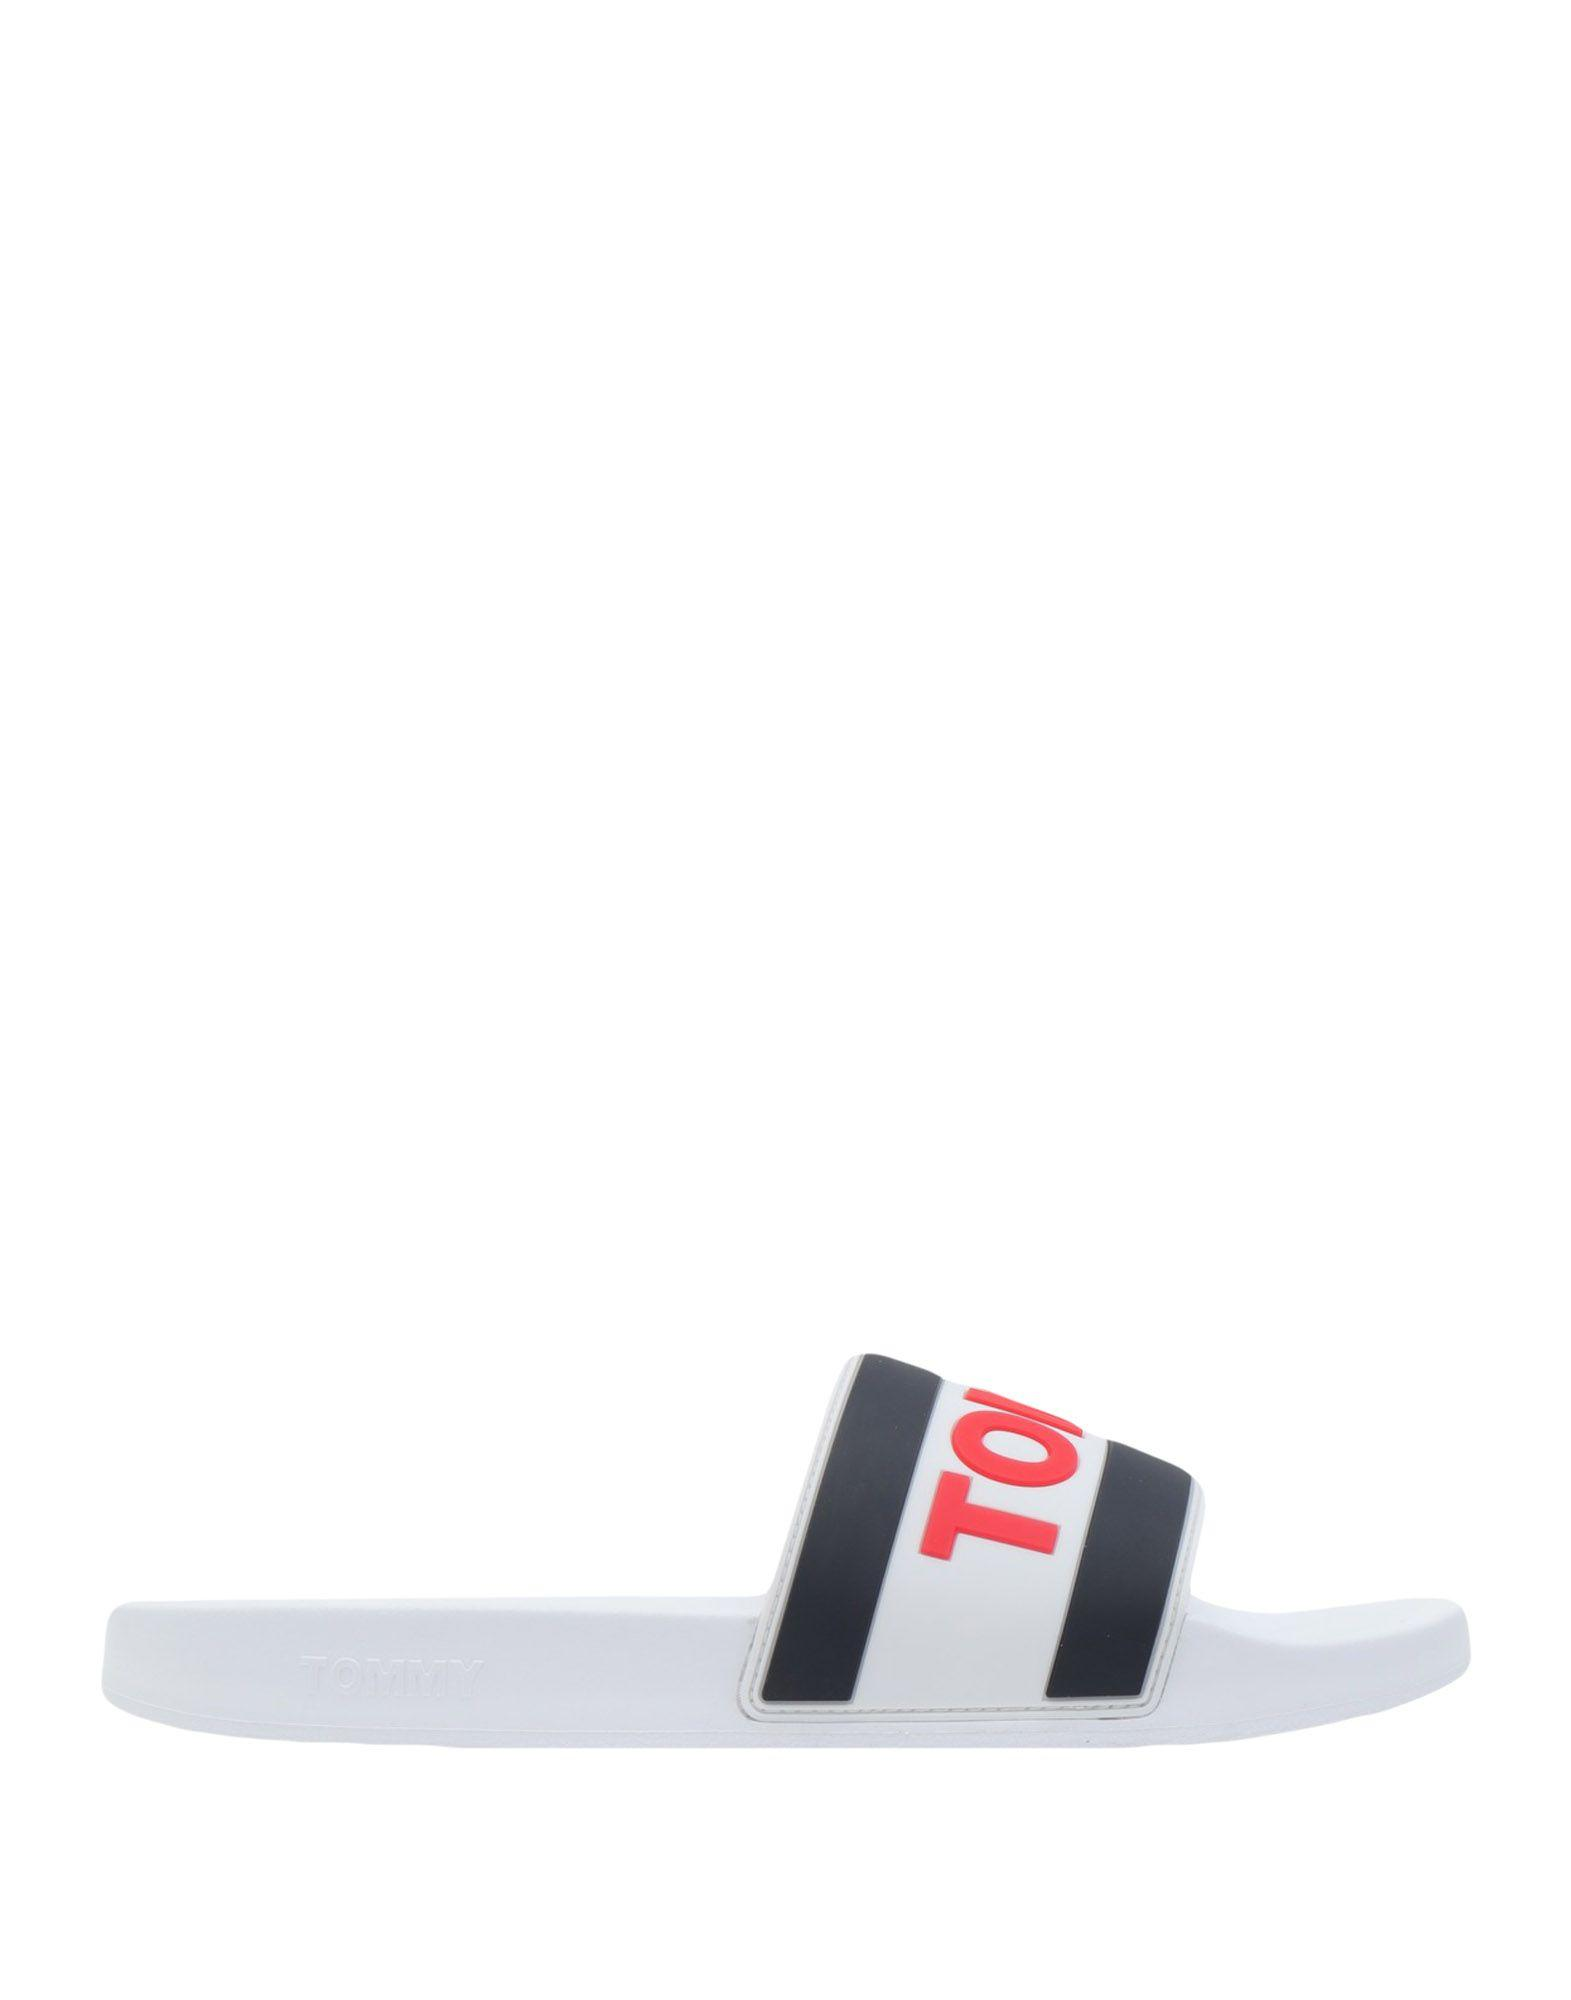 c7bfc766f Tommy Hilfiger Sandals in White for Men - Lyst